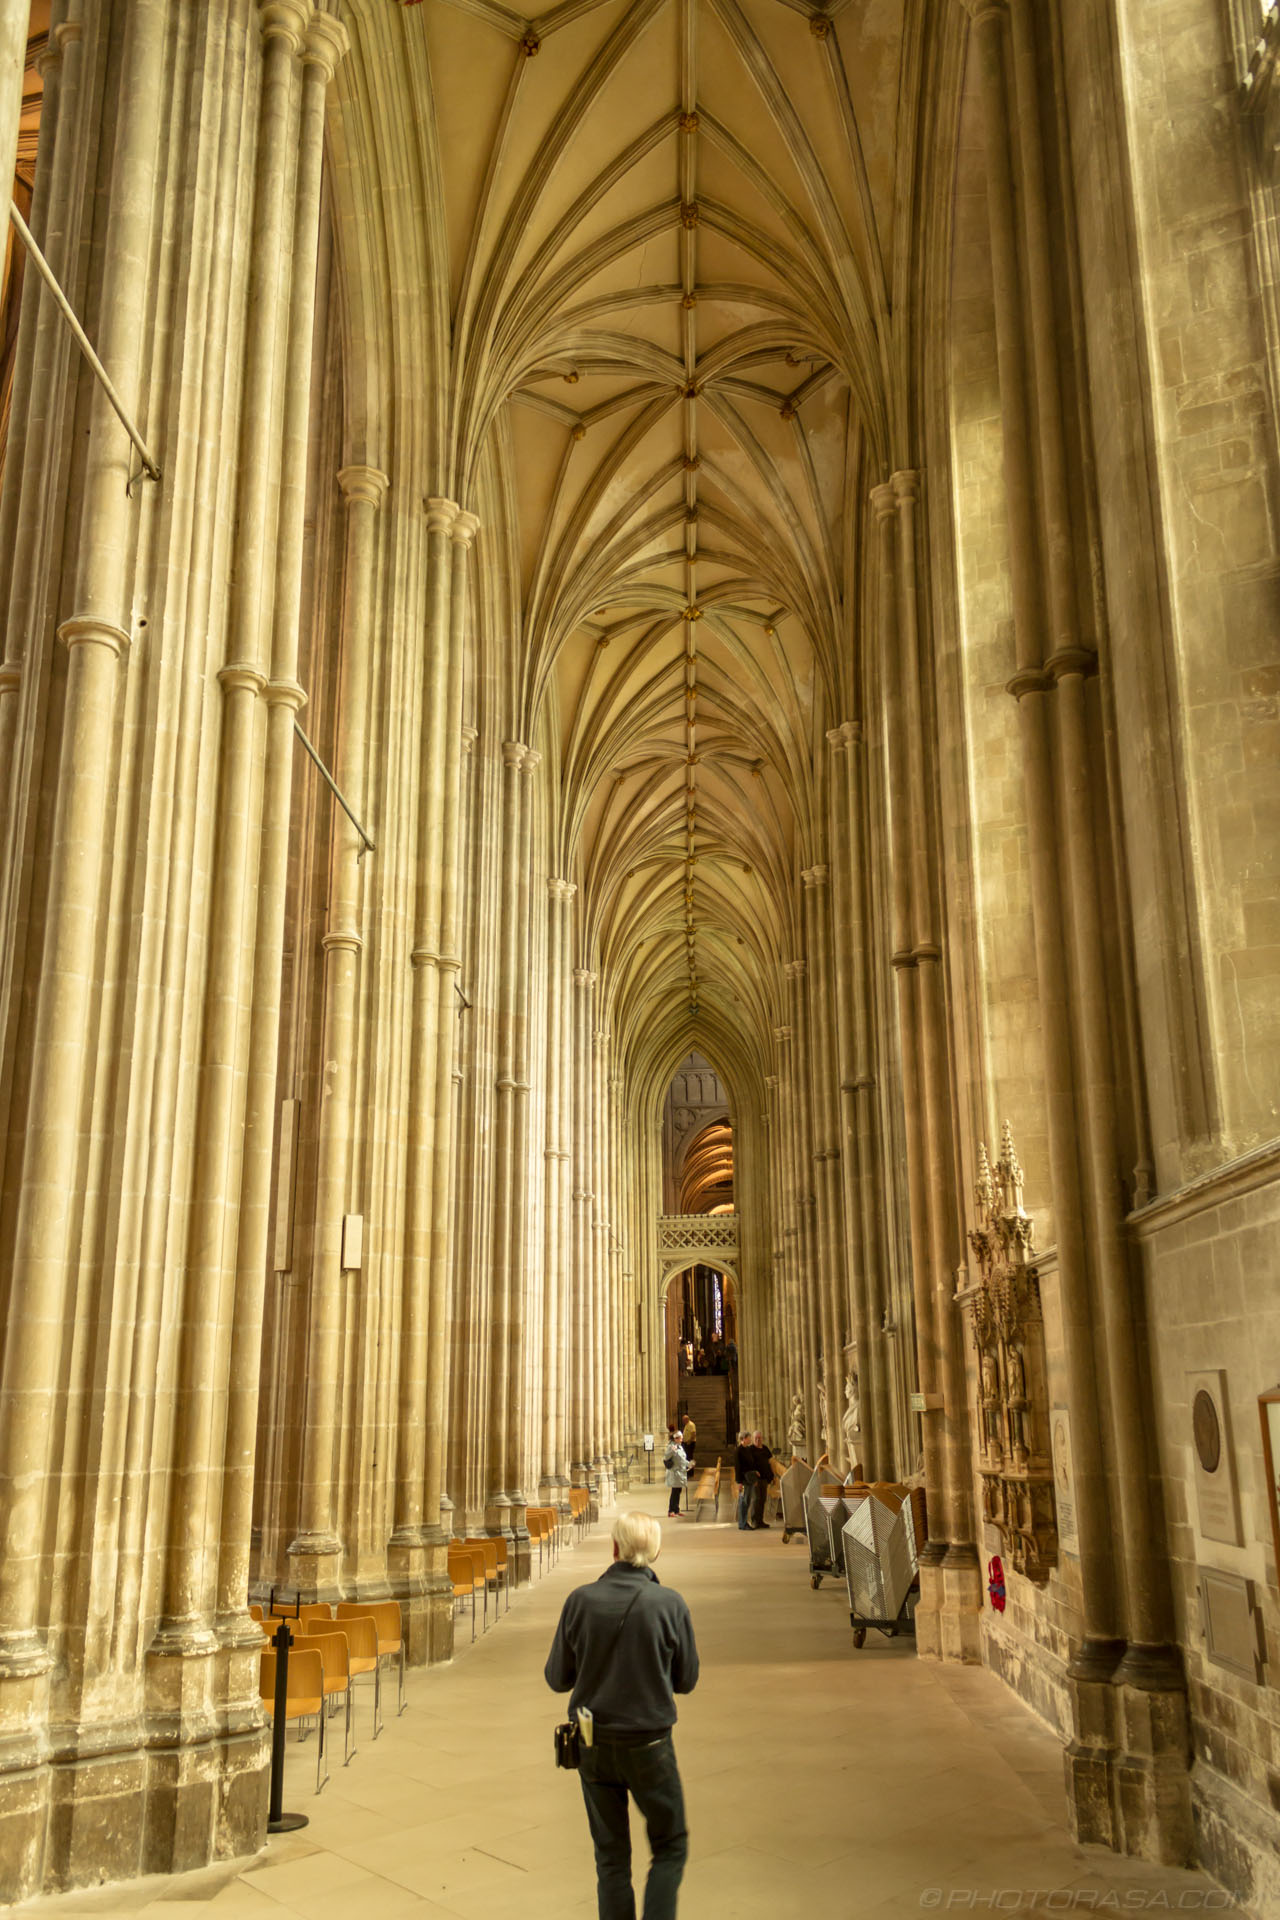 http://photorasa.com/canterbury-cathedral/south-aisle-of-nave/